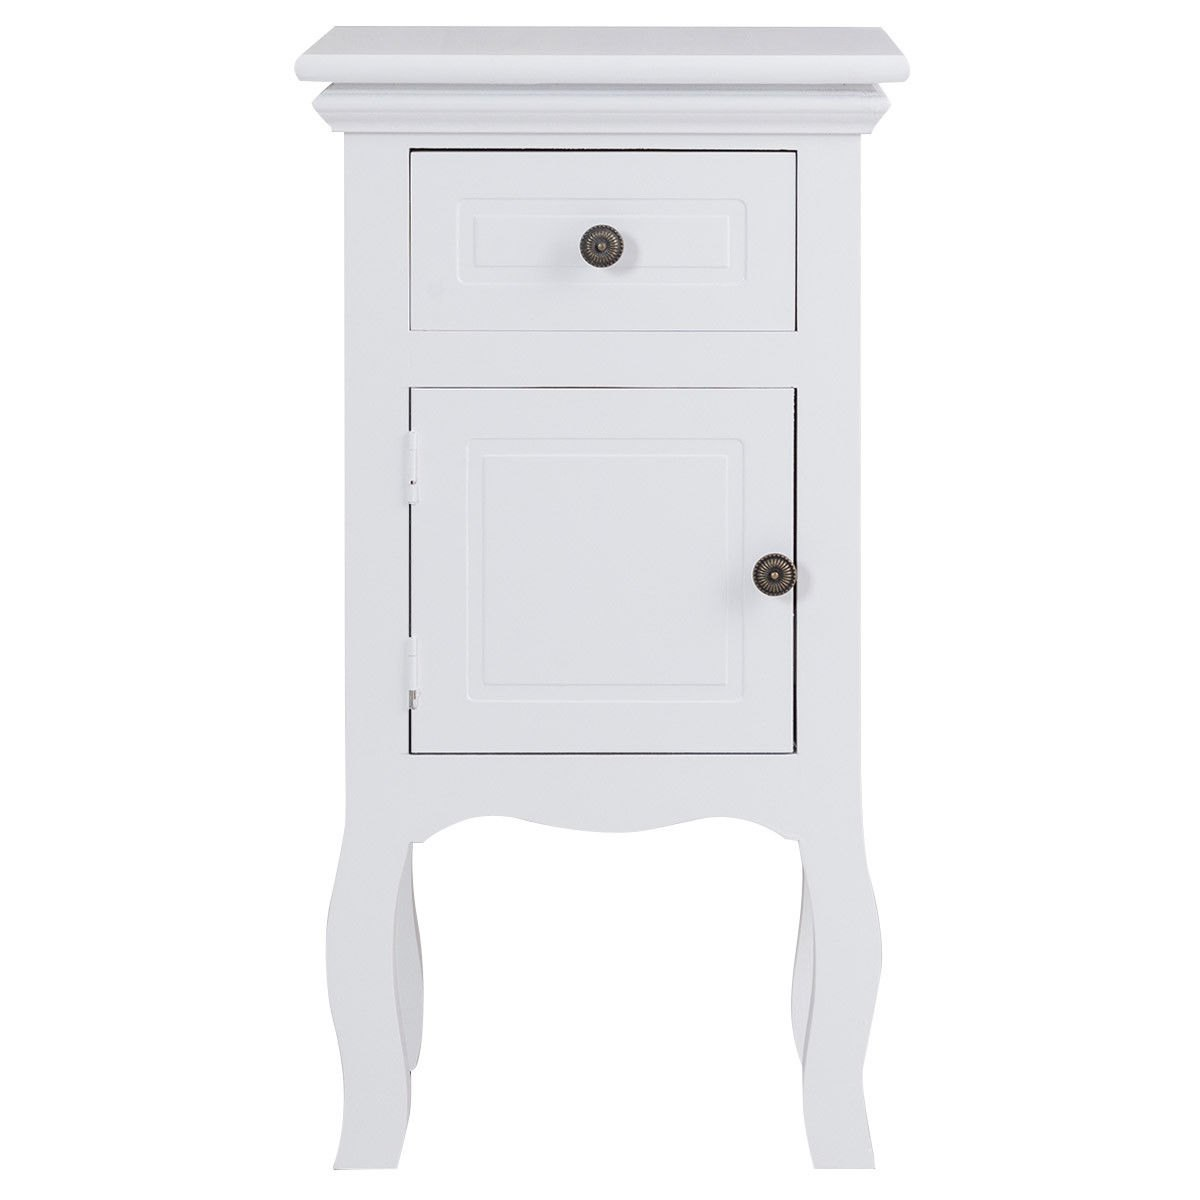 way white nightstand storage drawer and cabinet wood accent table end ikea vanity lights target outdoor wire side rose gold black acrylic small space living furniture console with